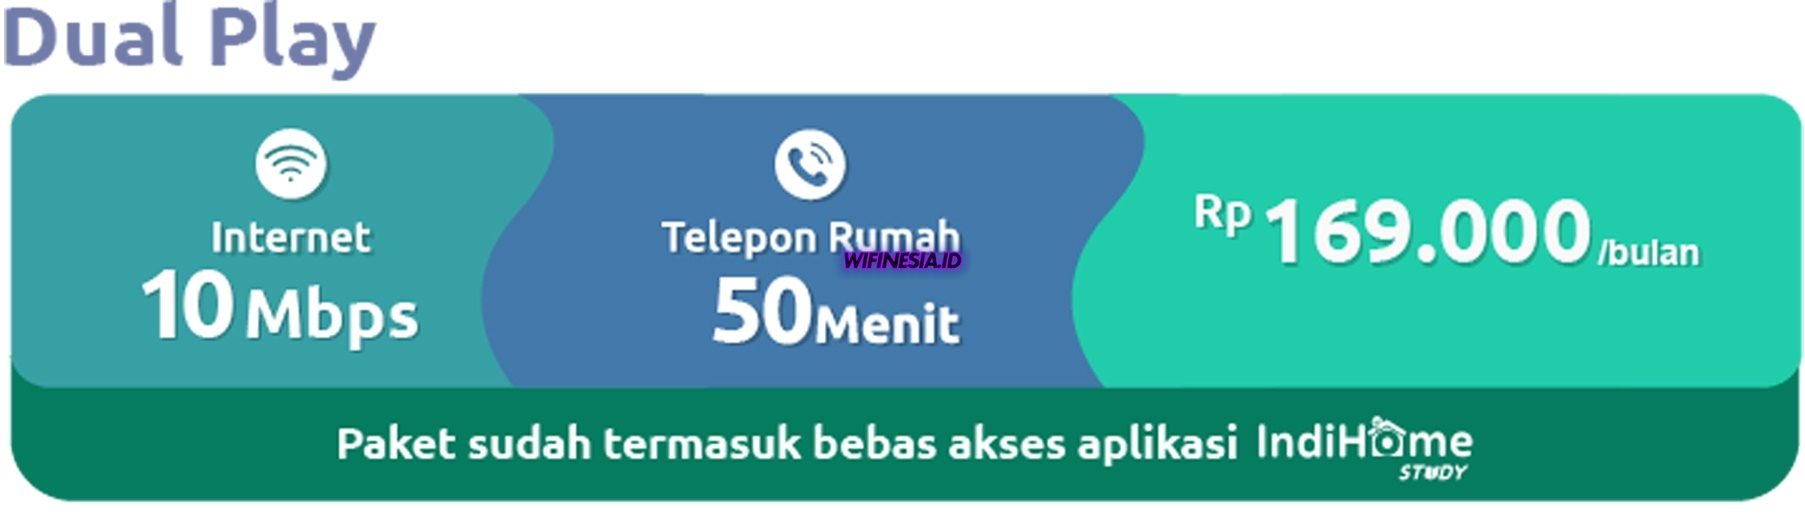 WiFi Murah Dibawah 200rb 2020 IndiHome Dual Play 10 Mbps Promo Learning From Home